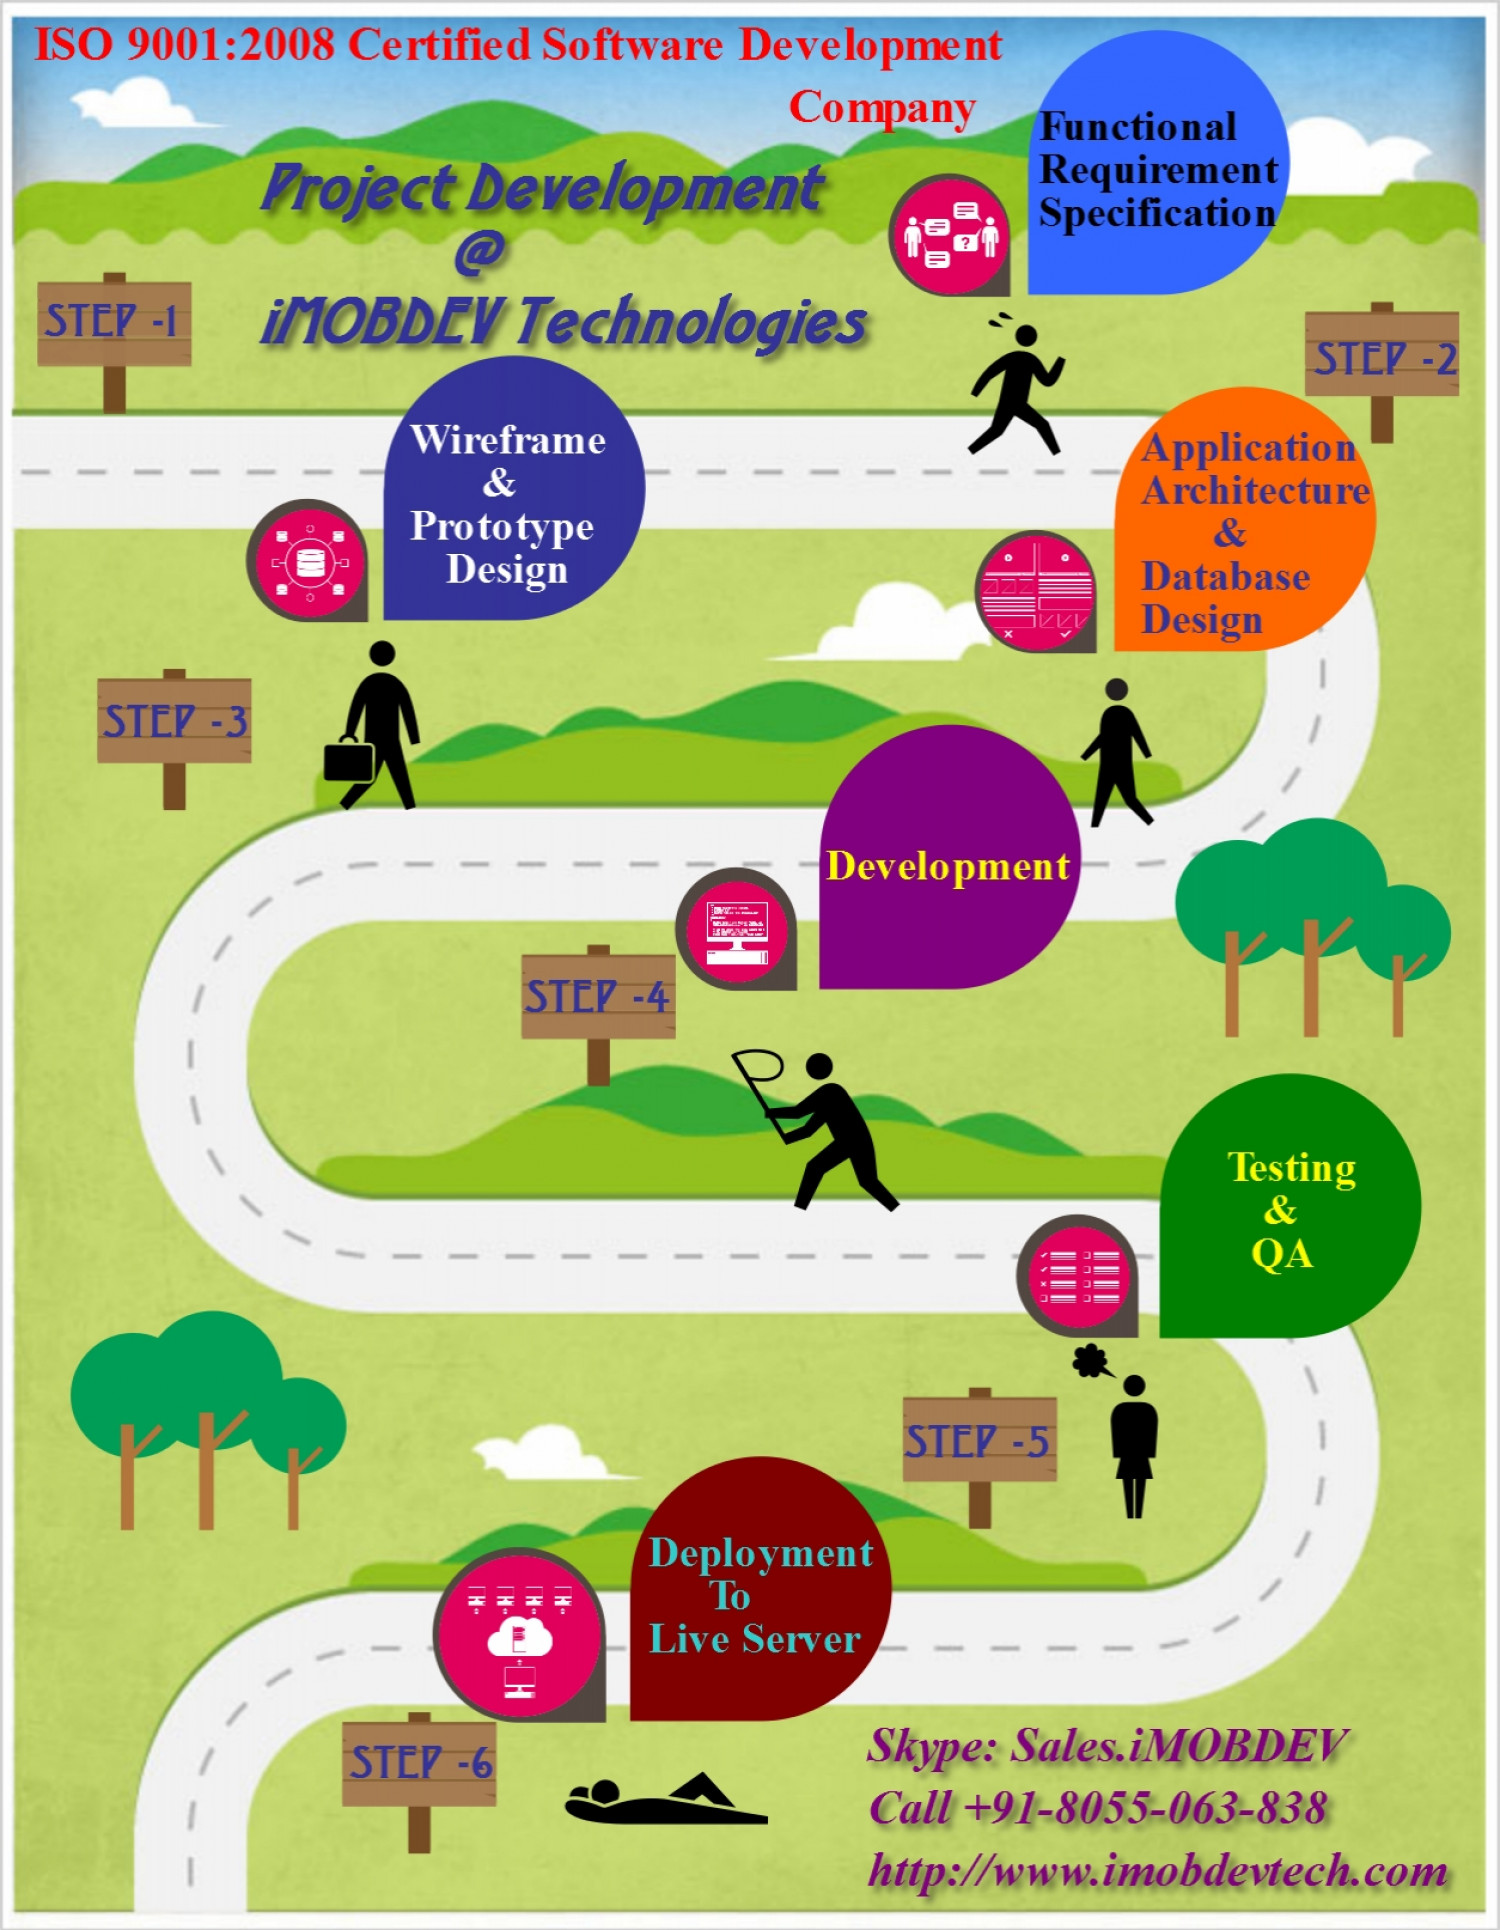 iOS And Android.Company Hold ISO:9001:2008 software Development certificate Infographic